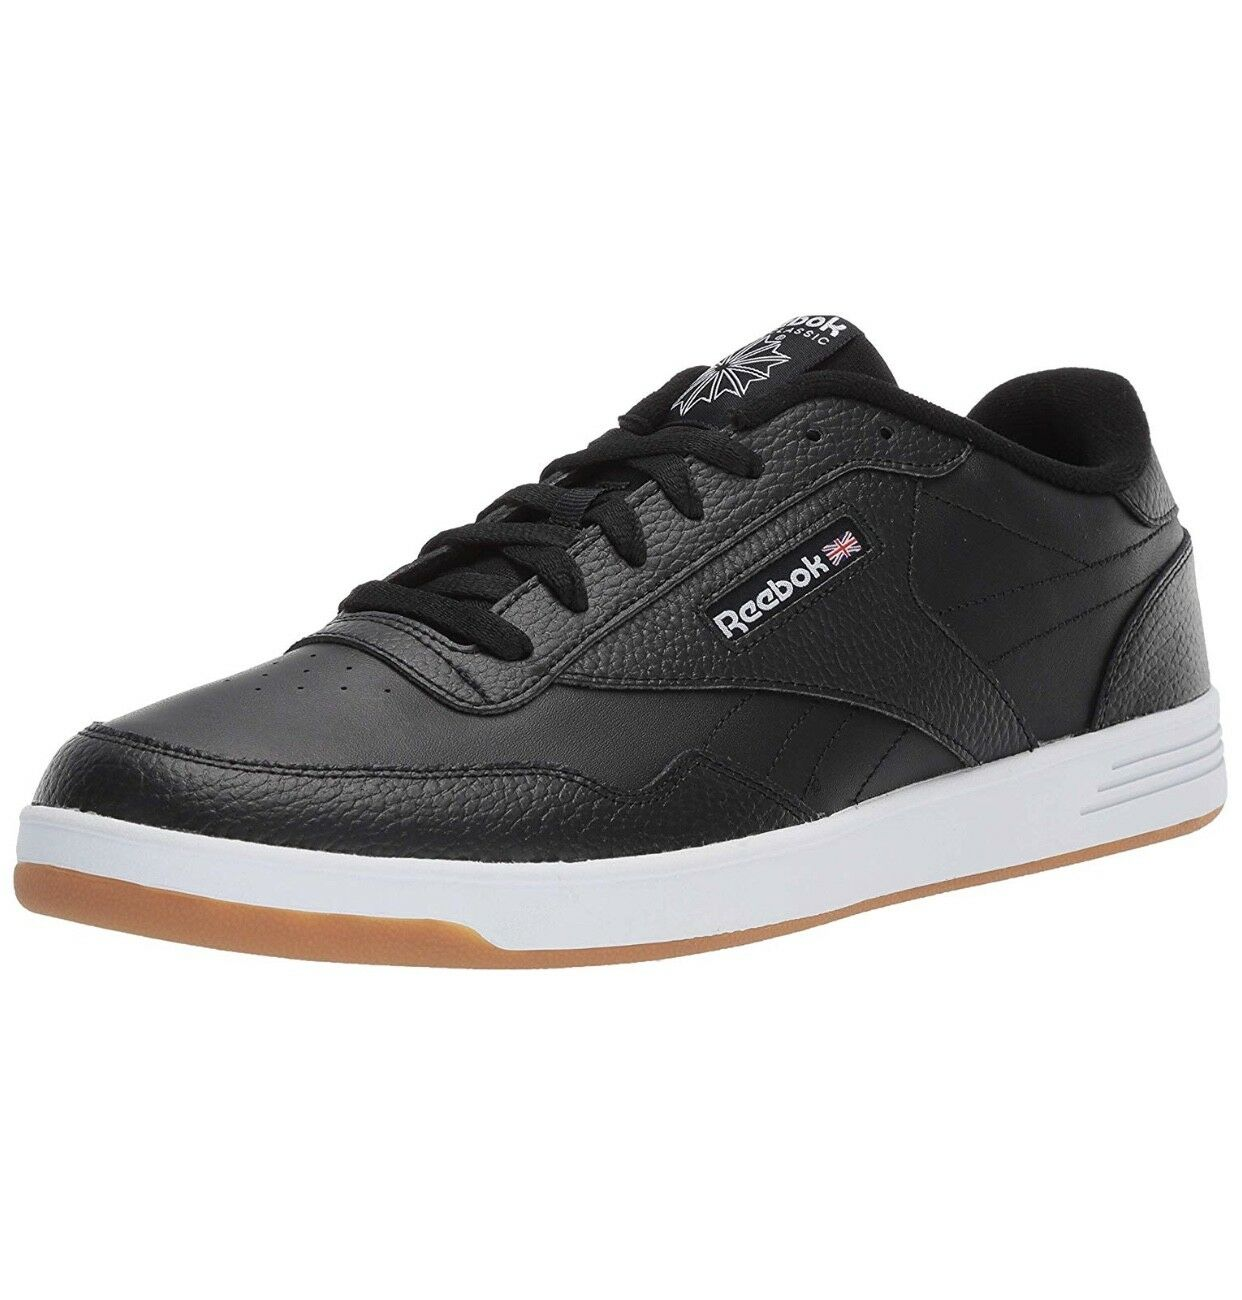 REEBOK CLUB MENT BLACK WHITE DV3788 SNEAKER MEN SHOES S-C